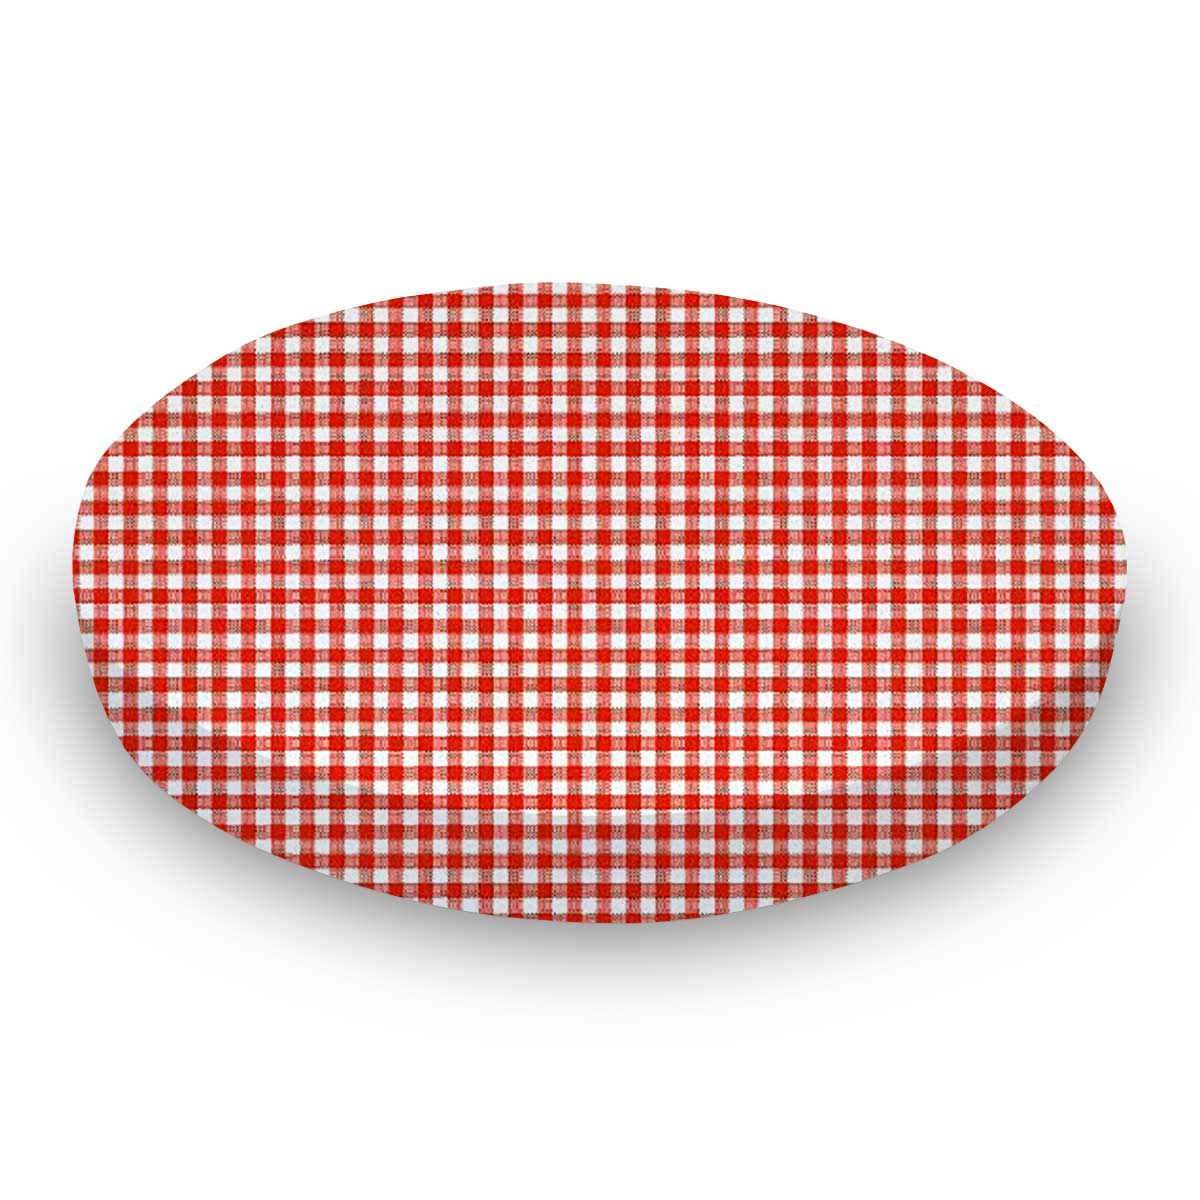 Primary Red Gingham Woven